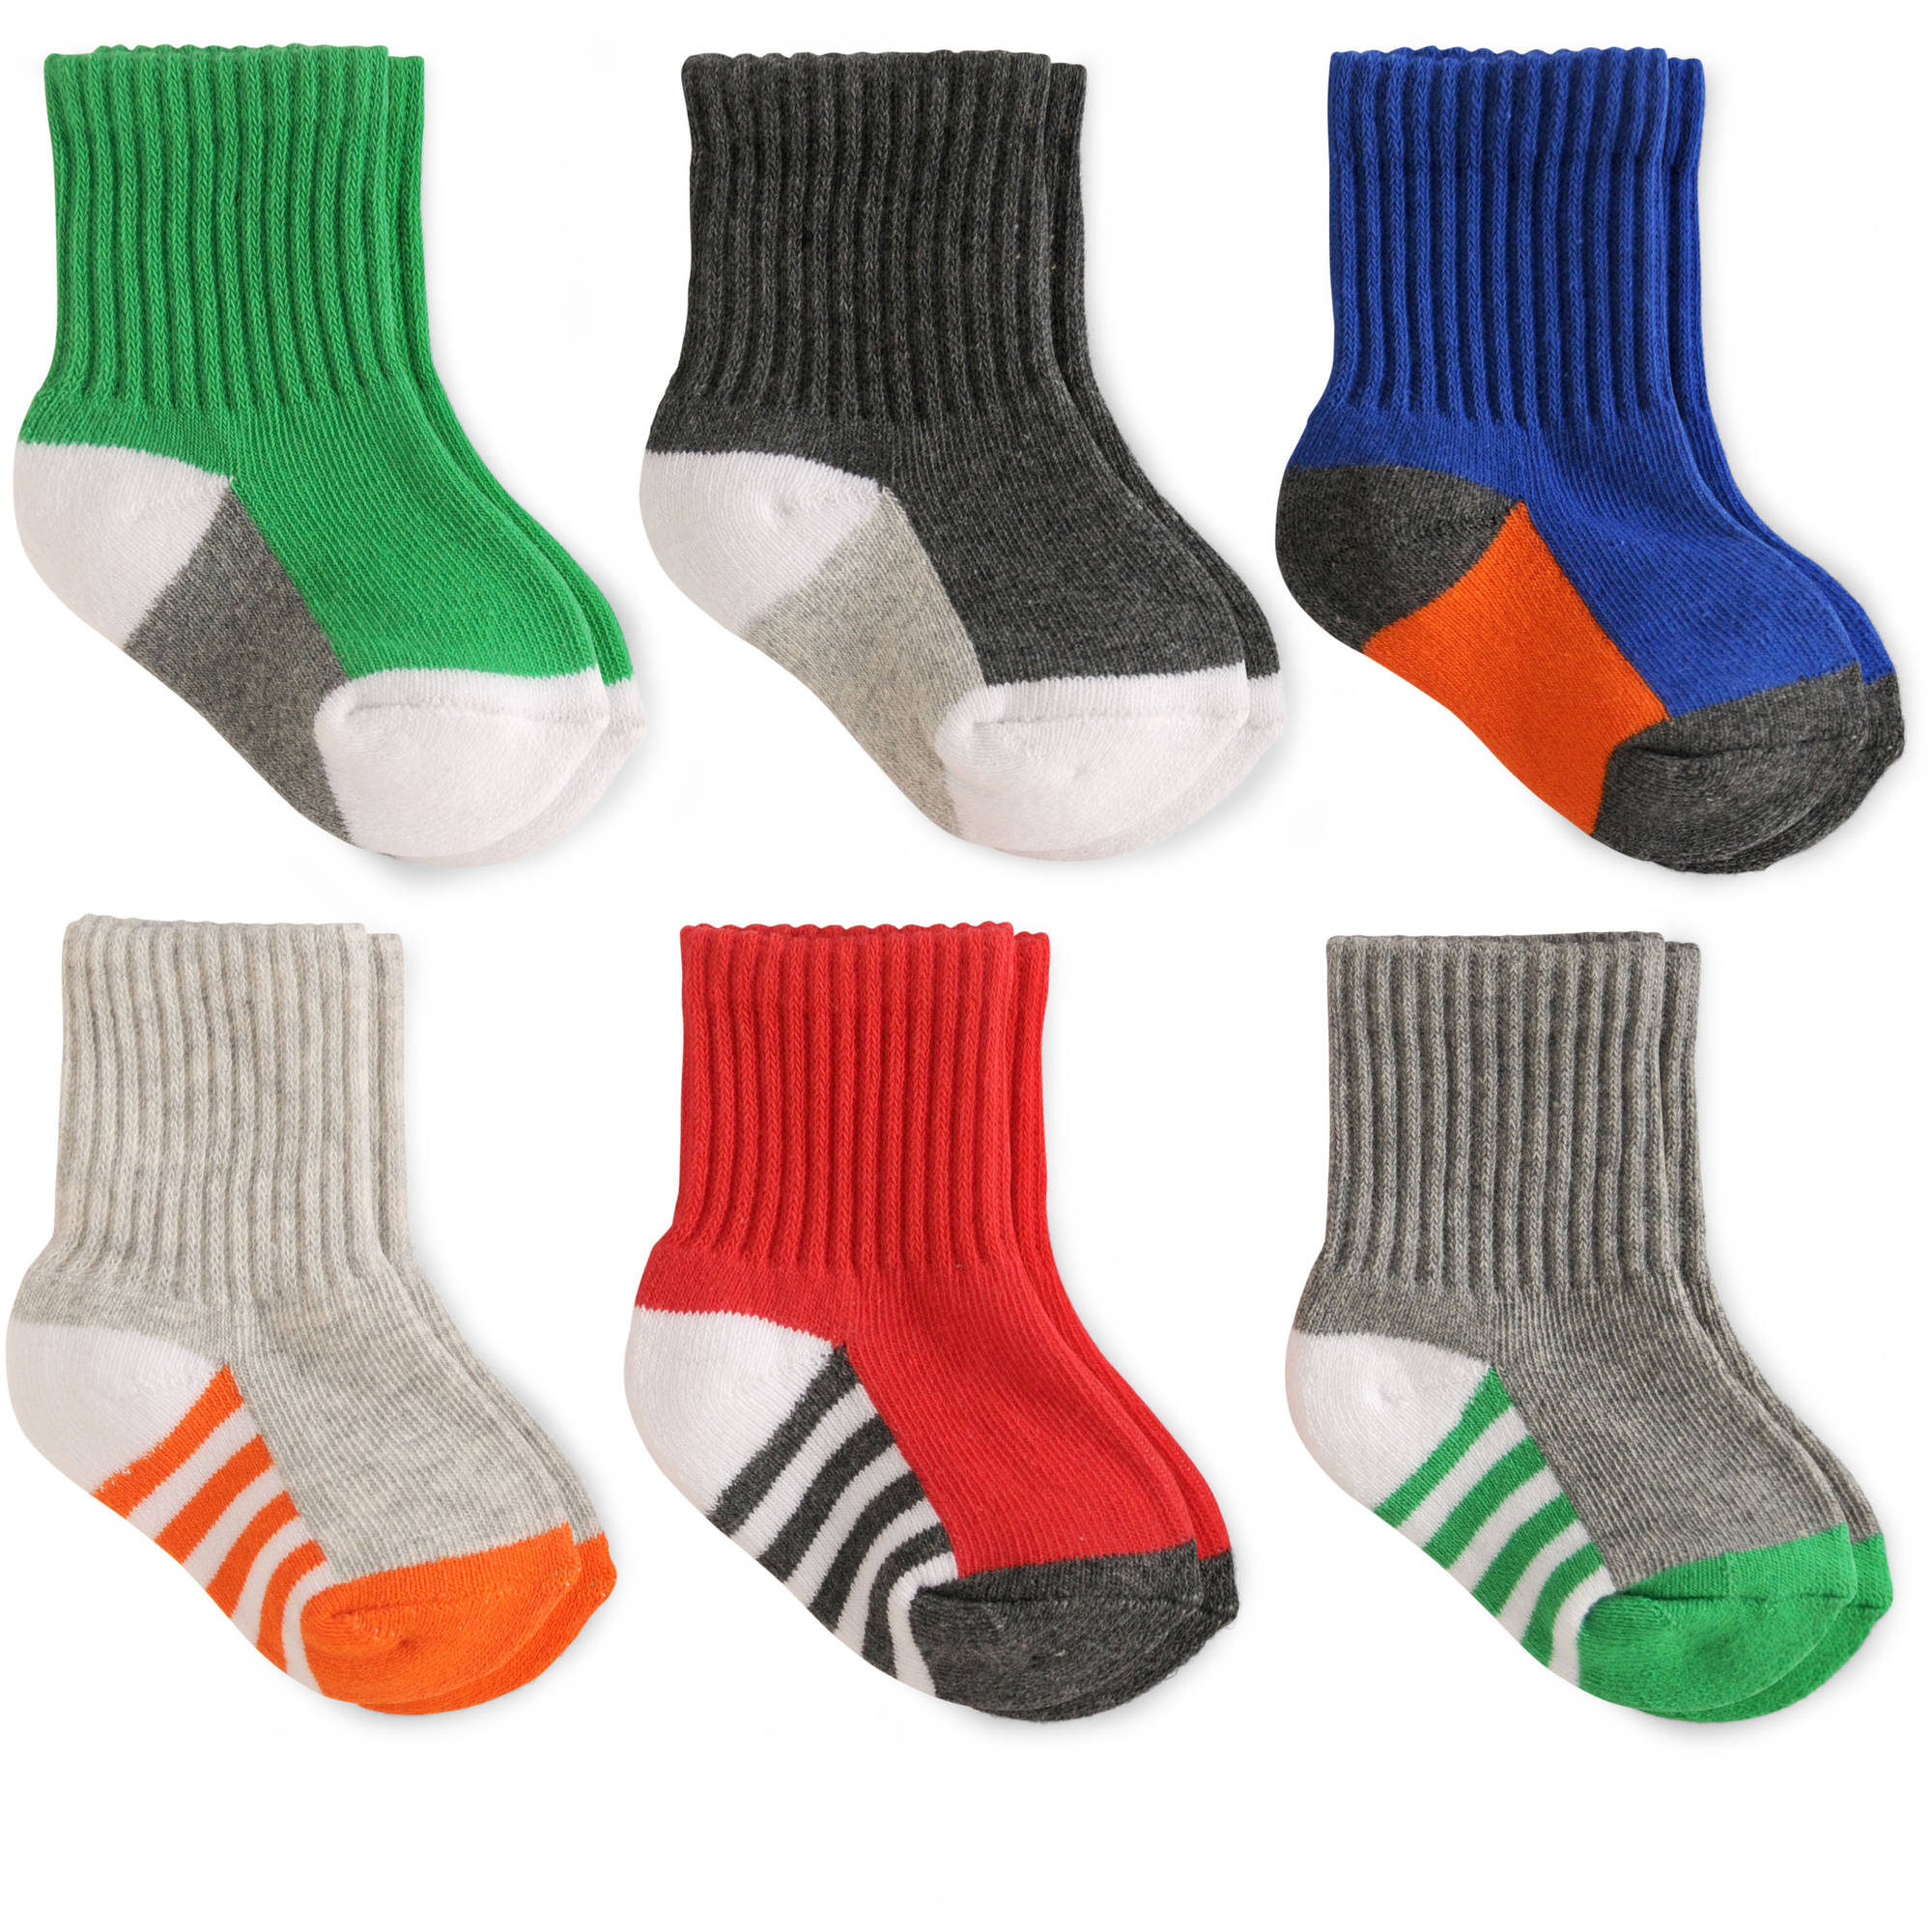 Garanimals Baby Toddler Boys' Assorted Socks, 6-Pack